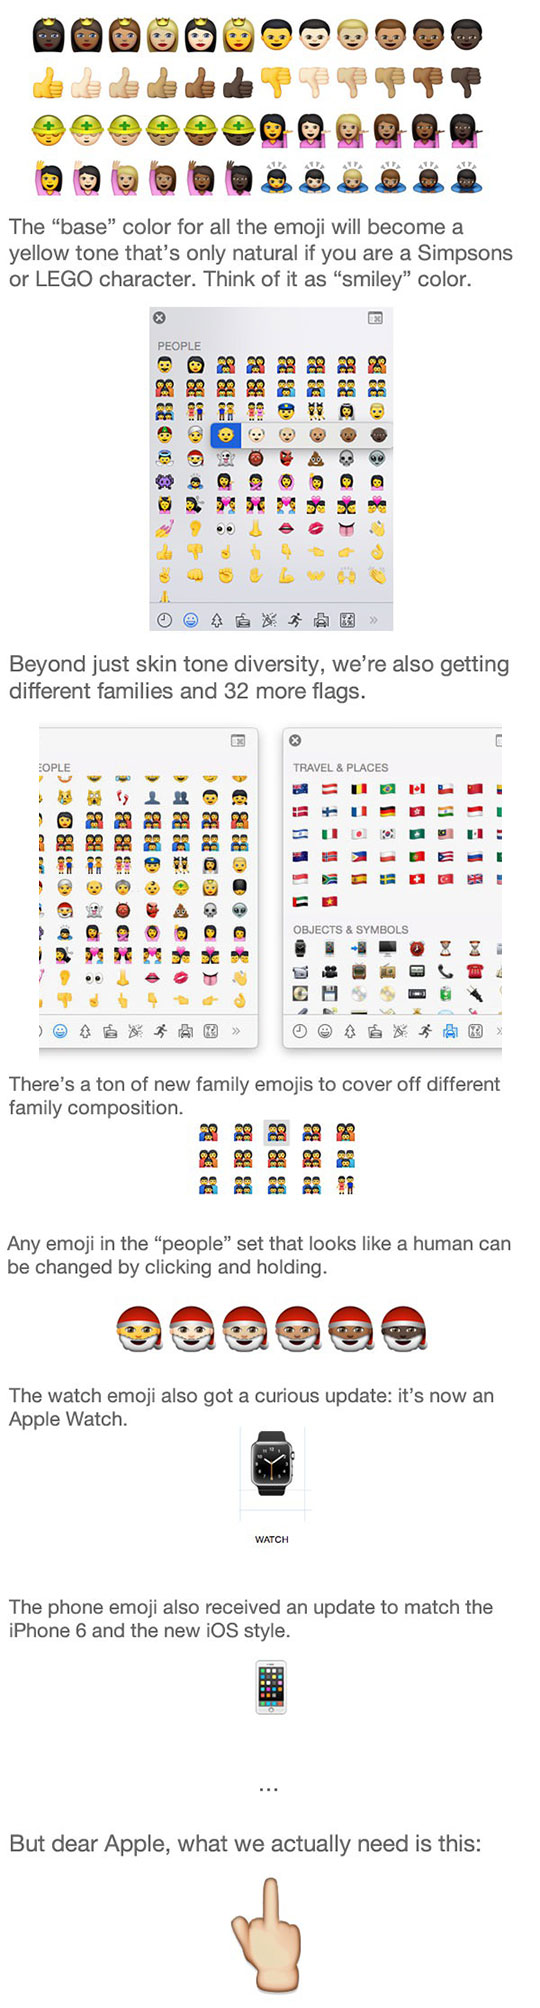 These Are Apple's New, Diverse Emoji